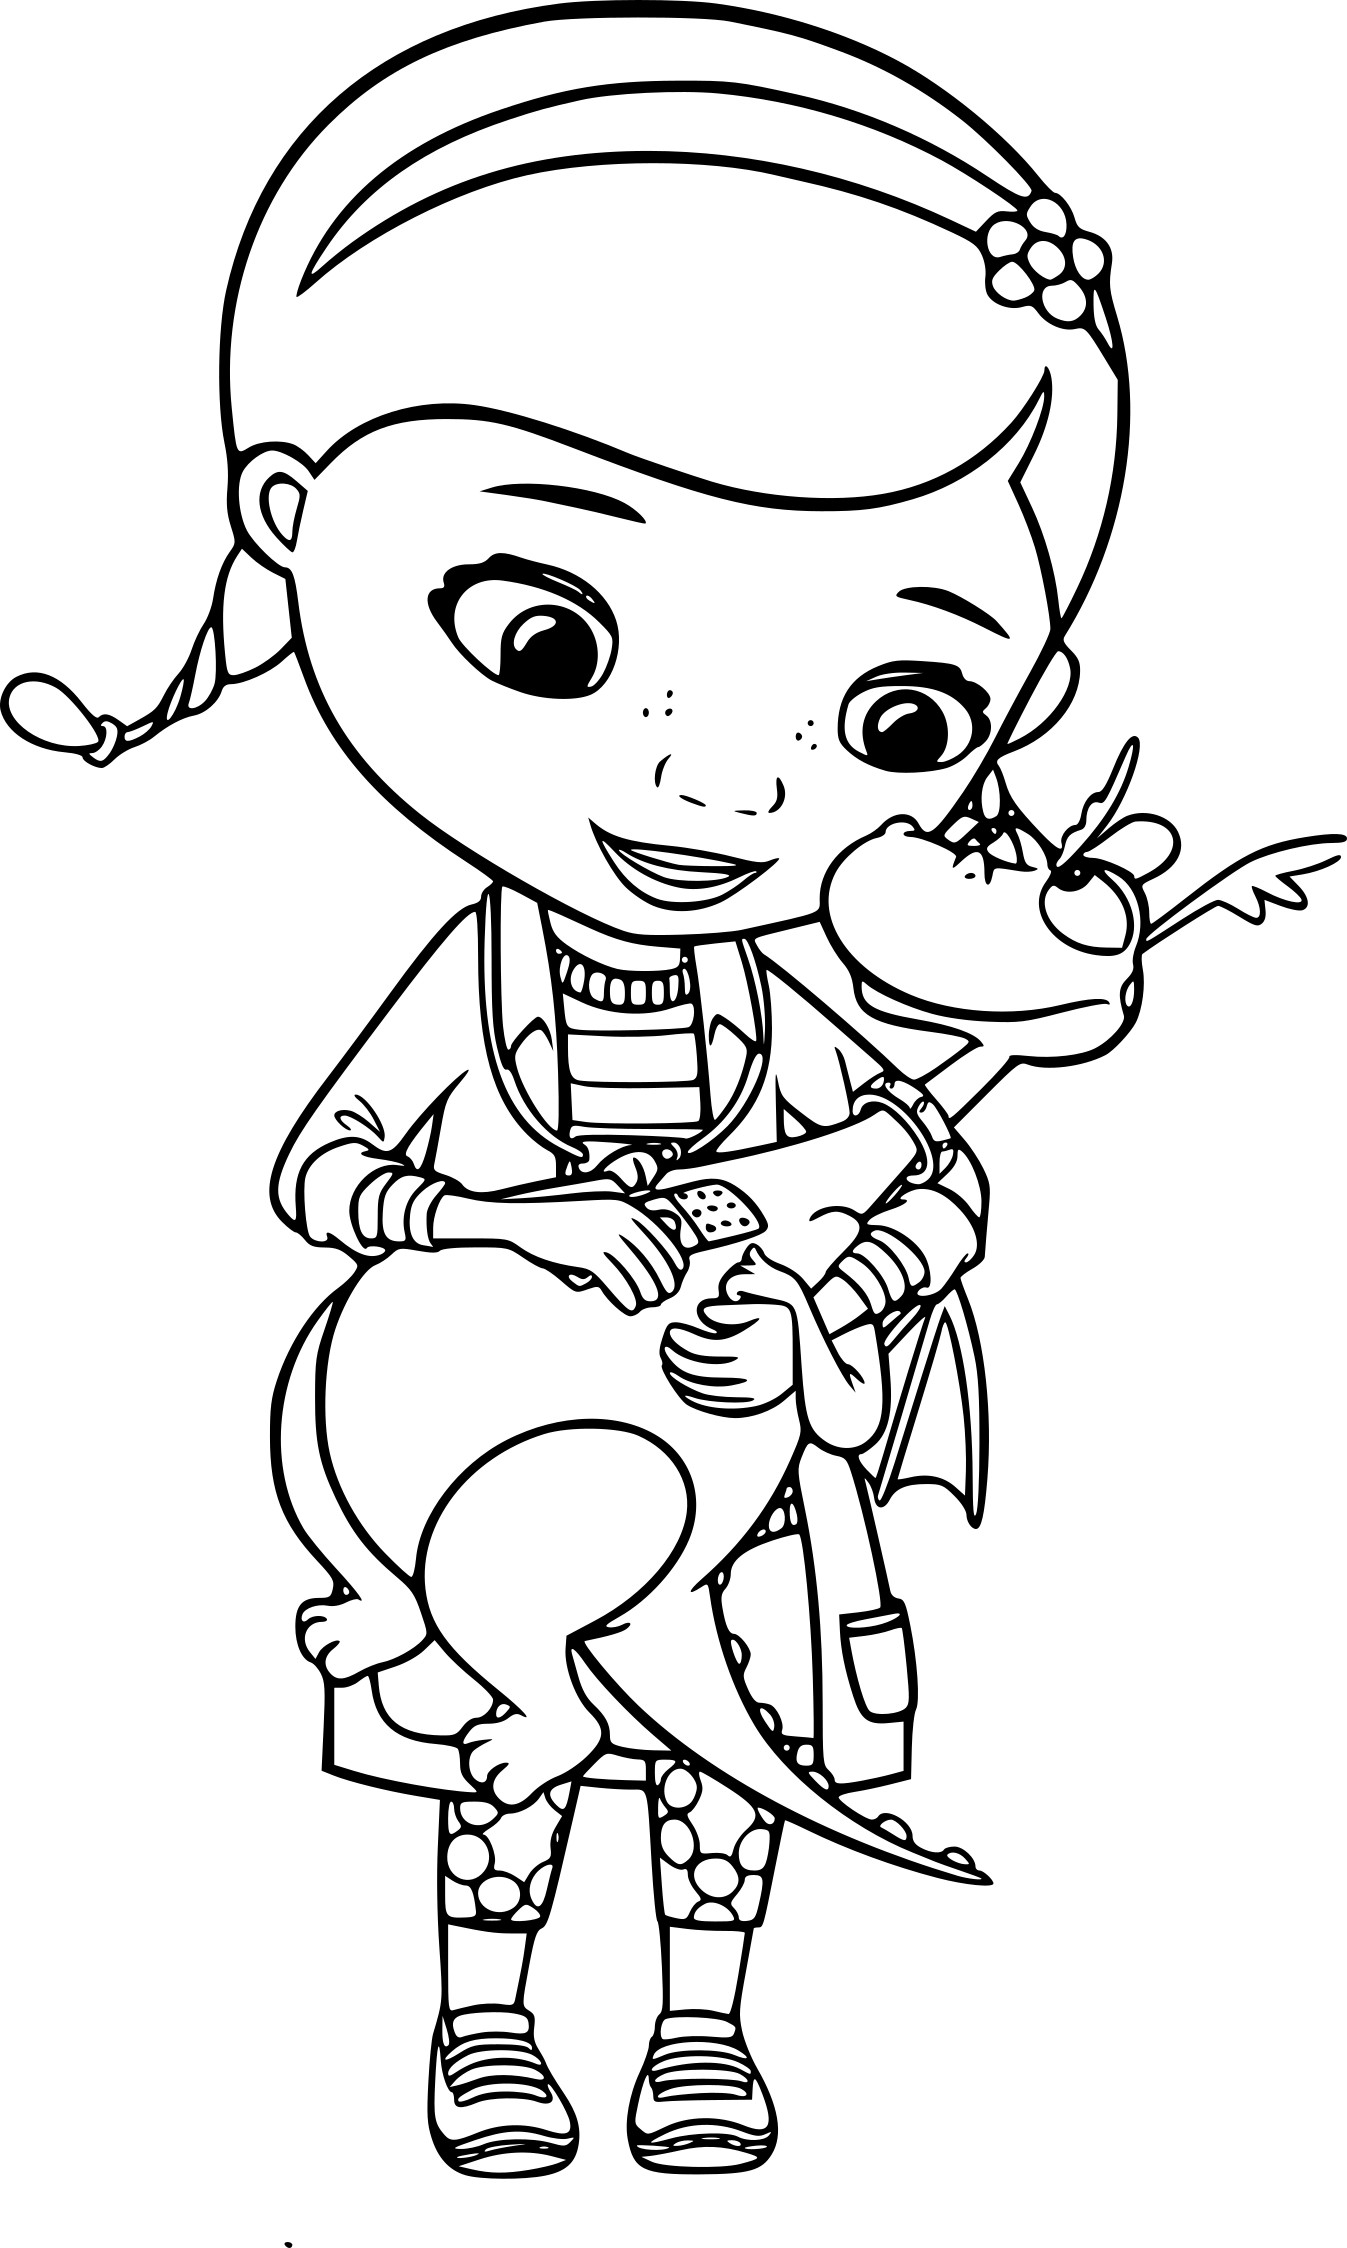 Unique dessin a colorier manga fille - Coloriage fille ...